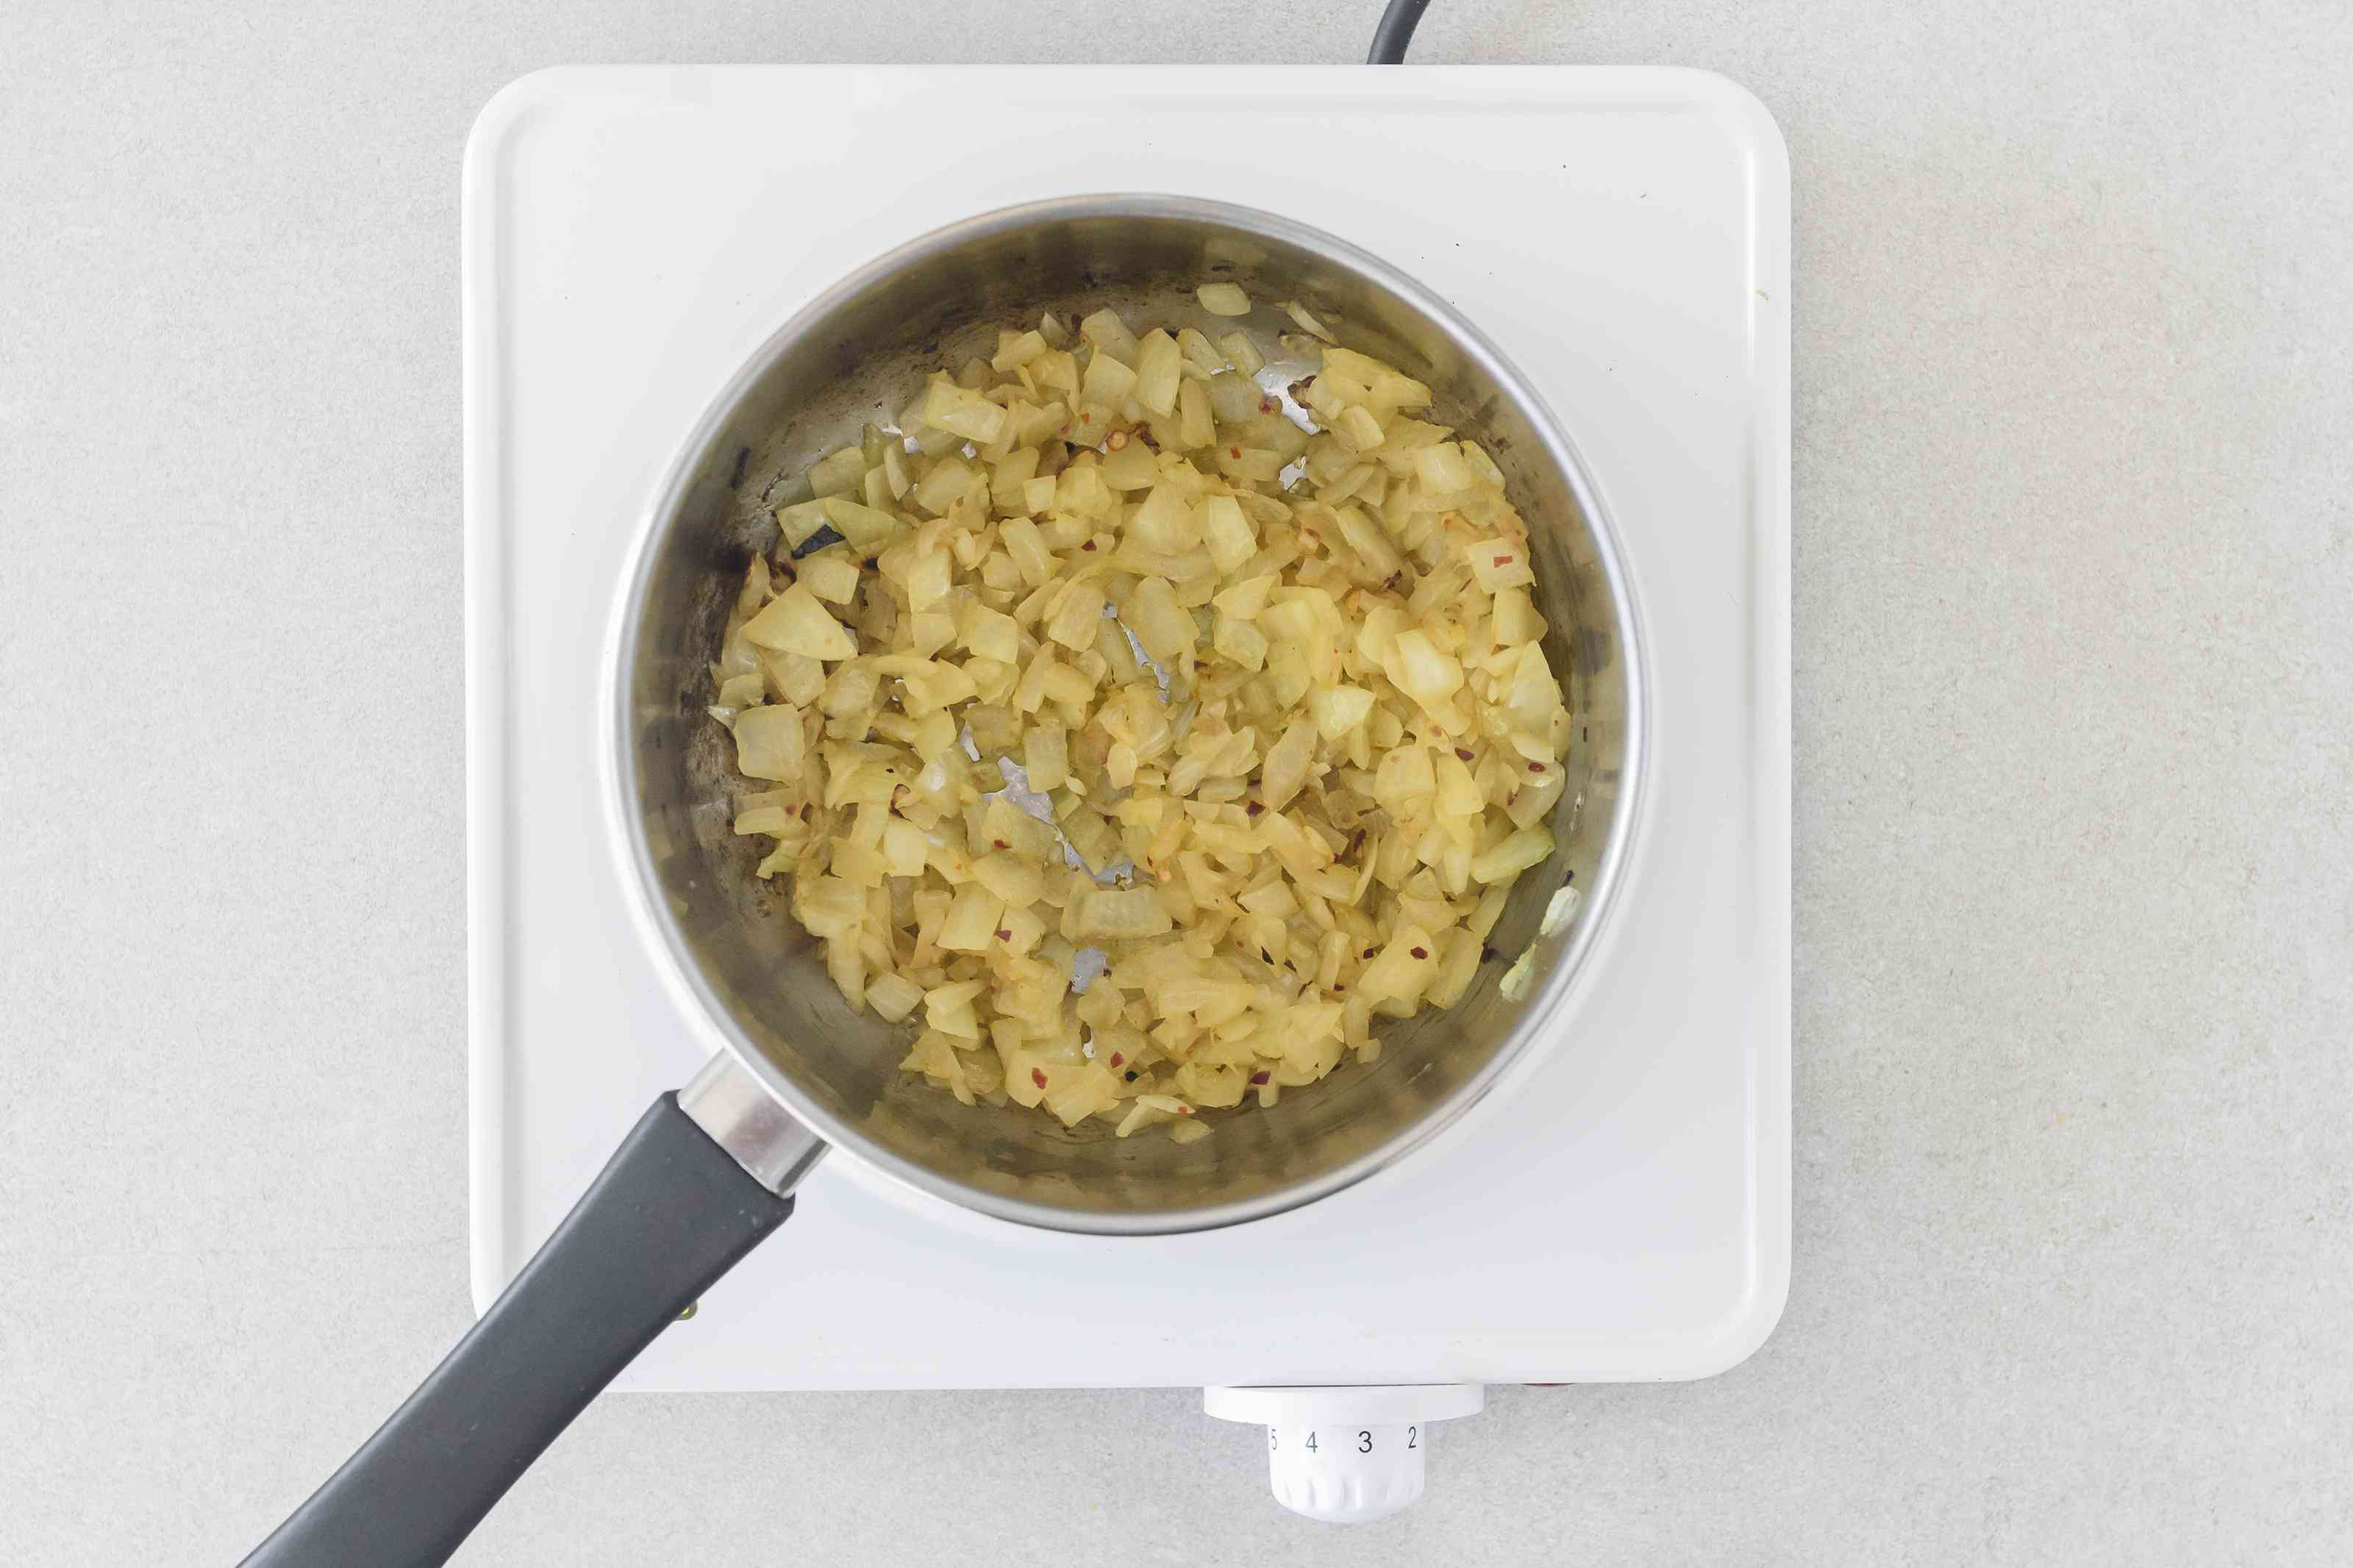 Saucepan with olive oil, onion, red pepper flakes, and salt